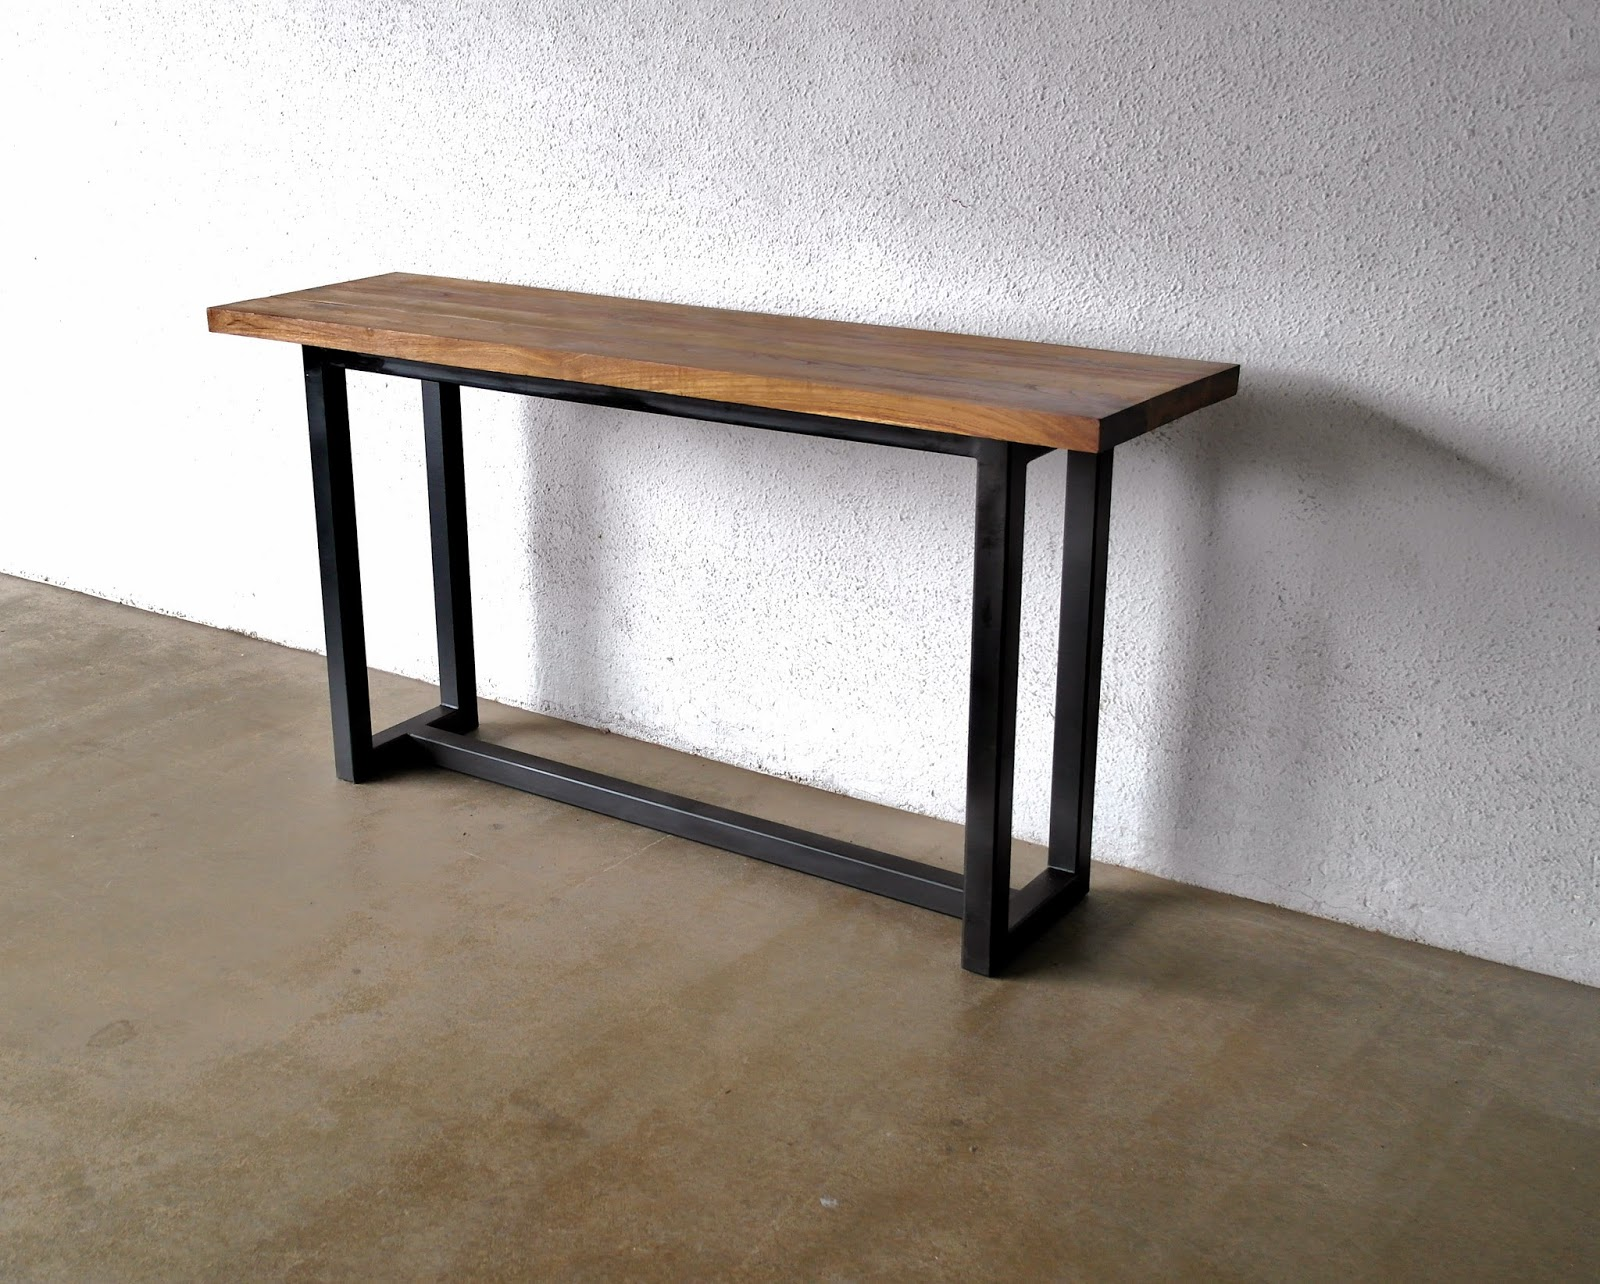 Slimline Sofa Side Table Bed Vancouver Cheap Industrial And Metal Furniture At Second Charm